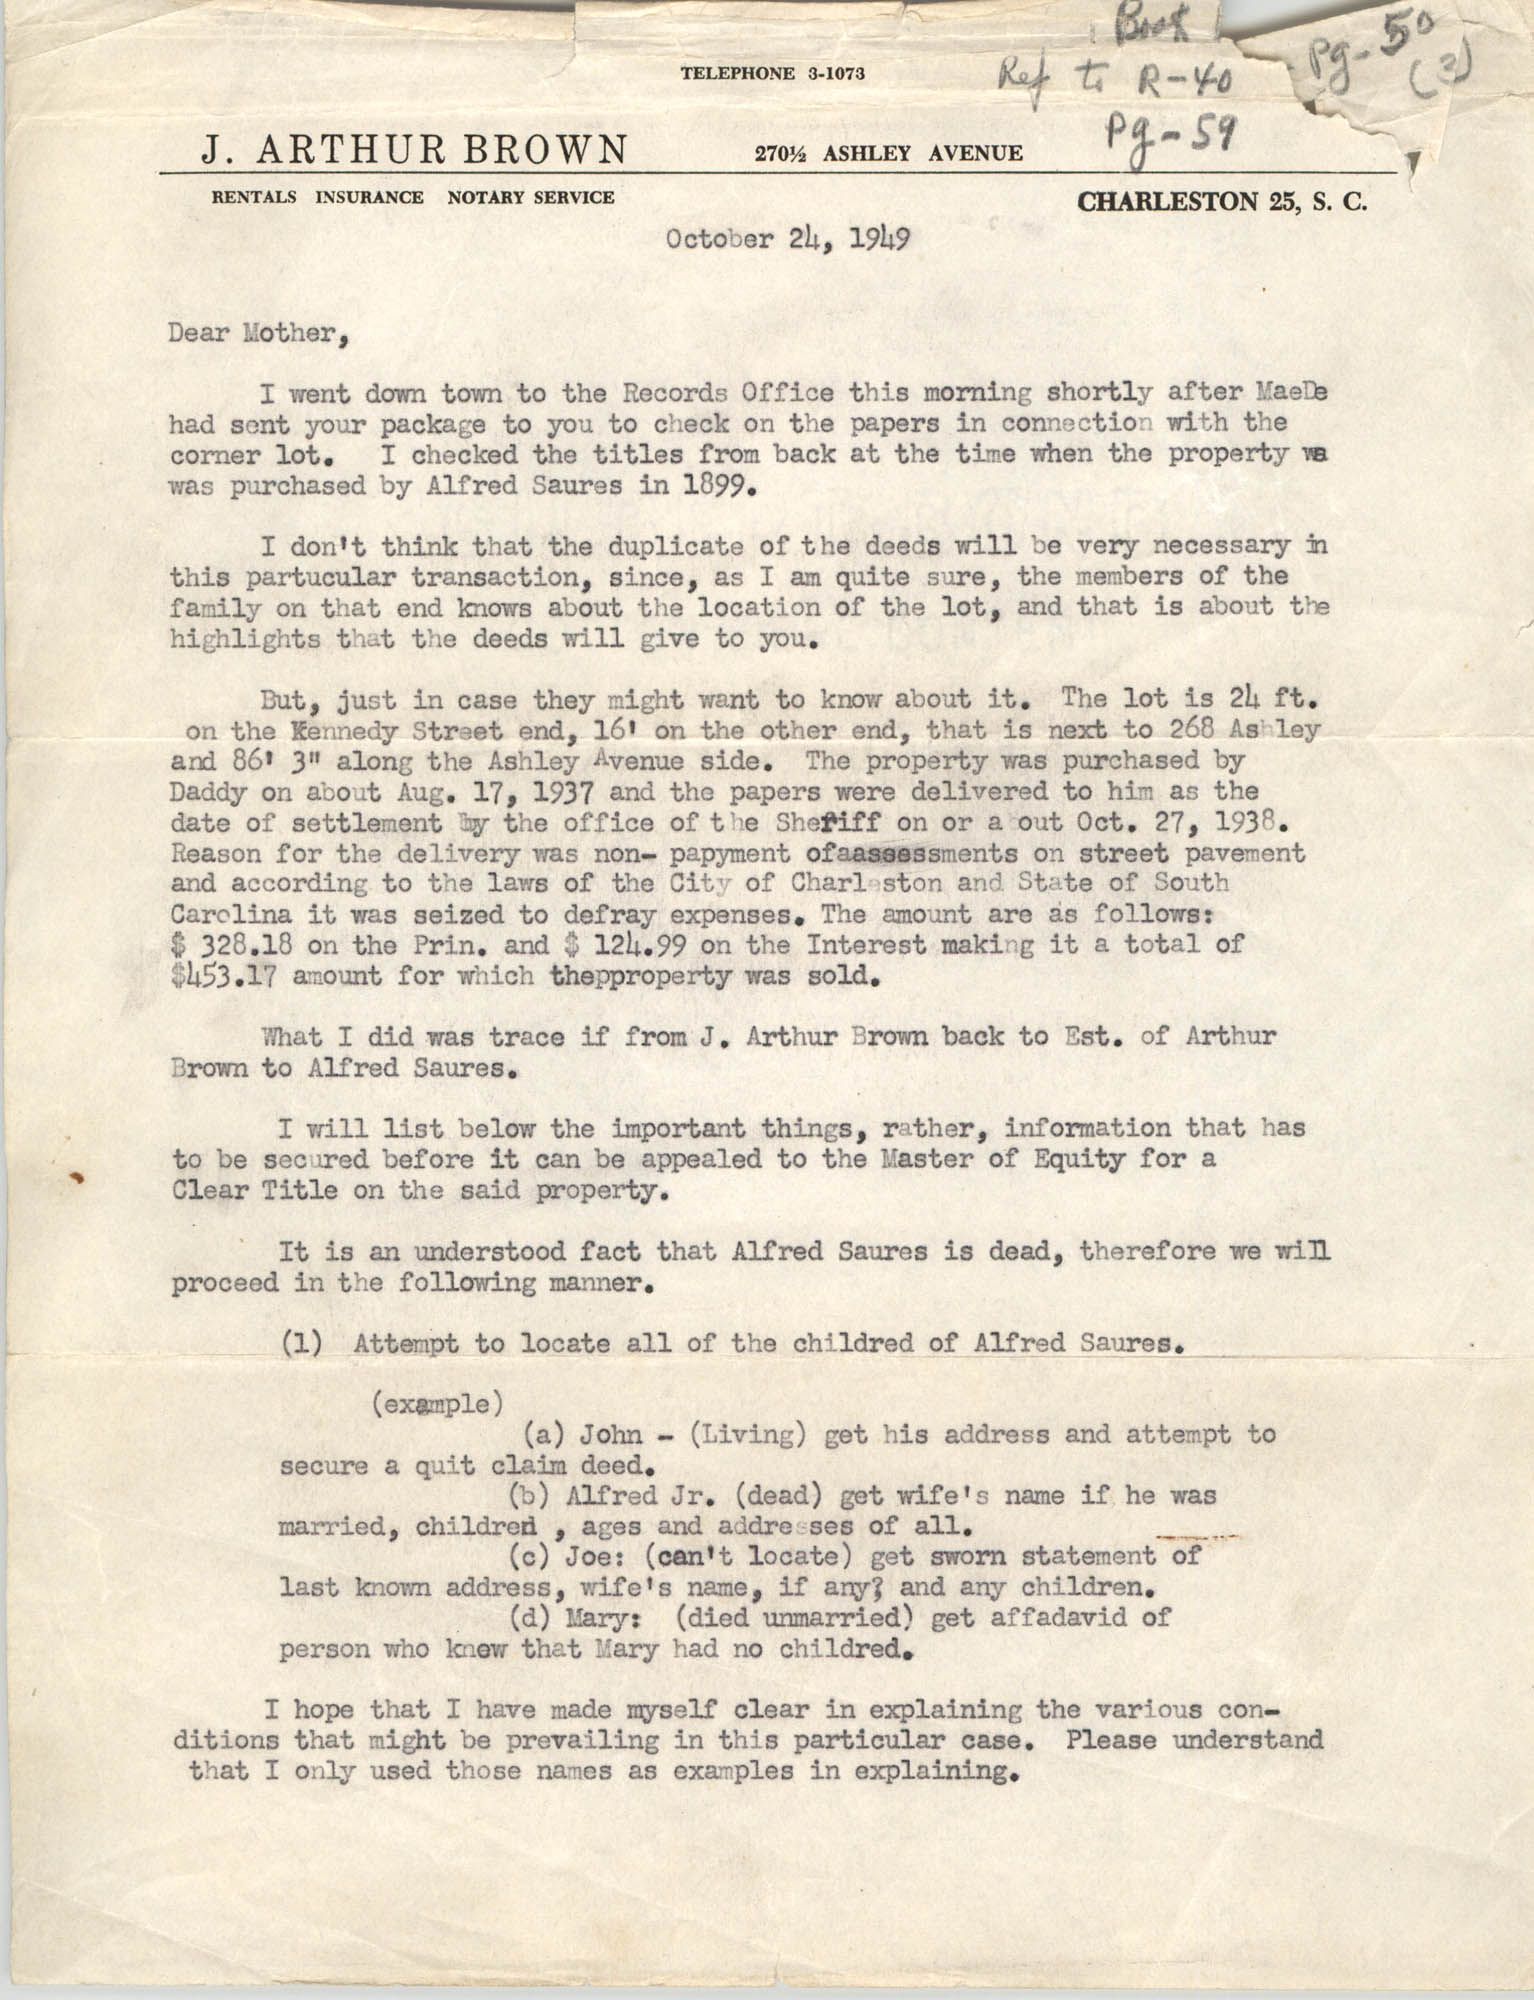 Letter from J. Arthur Brown to His Mother, October 24, 1949